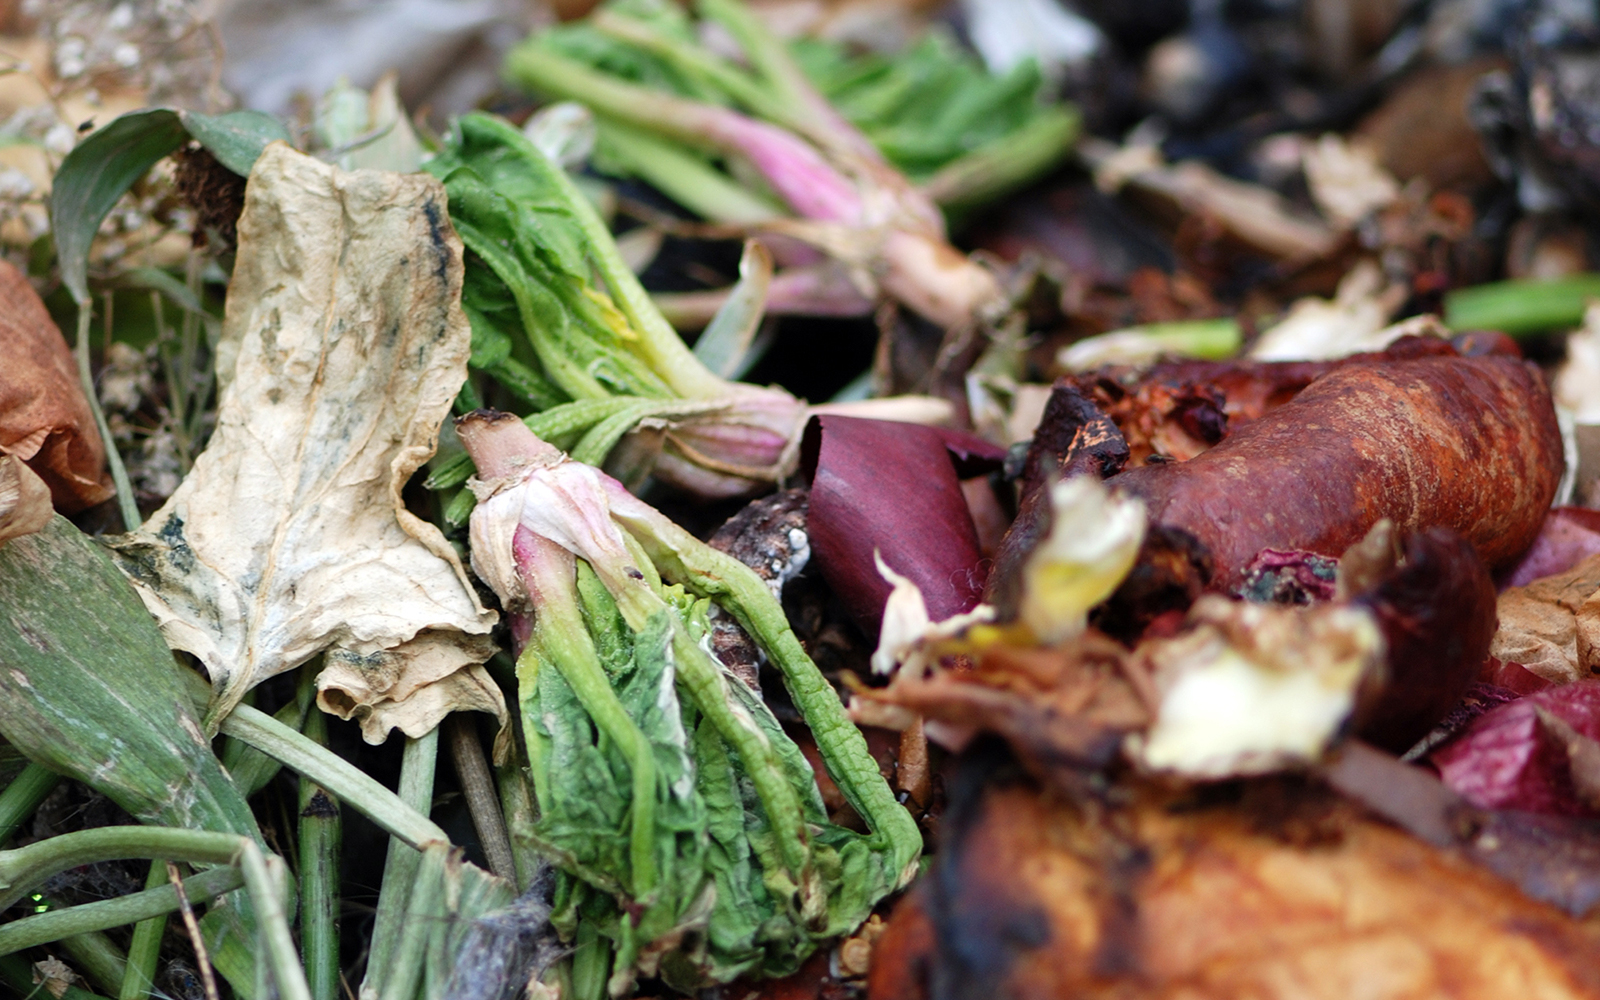 food and vegetable scraps